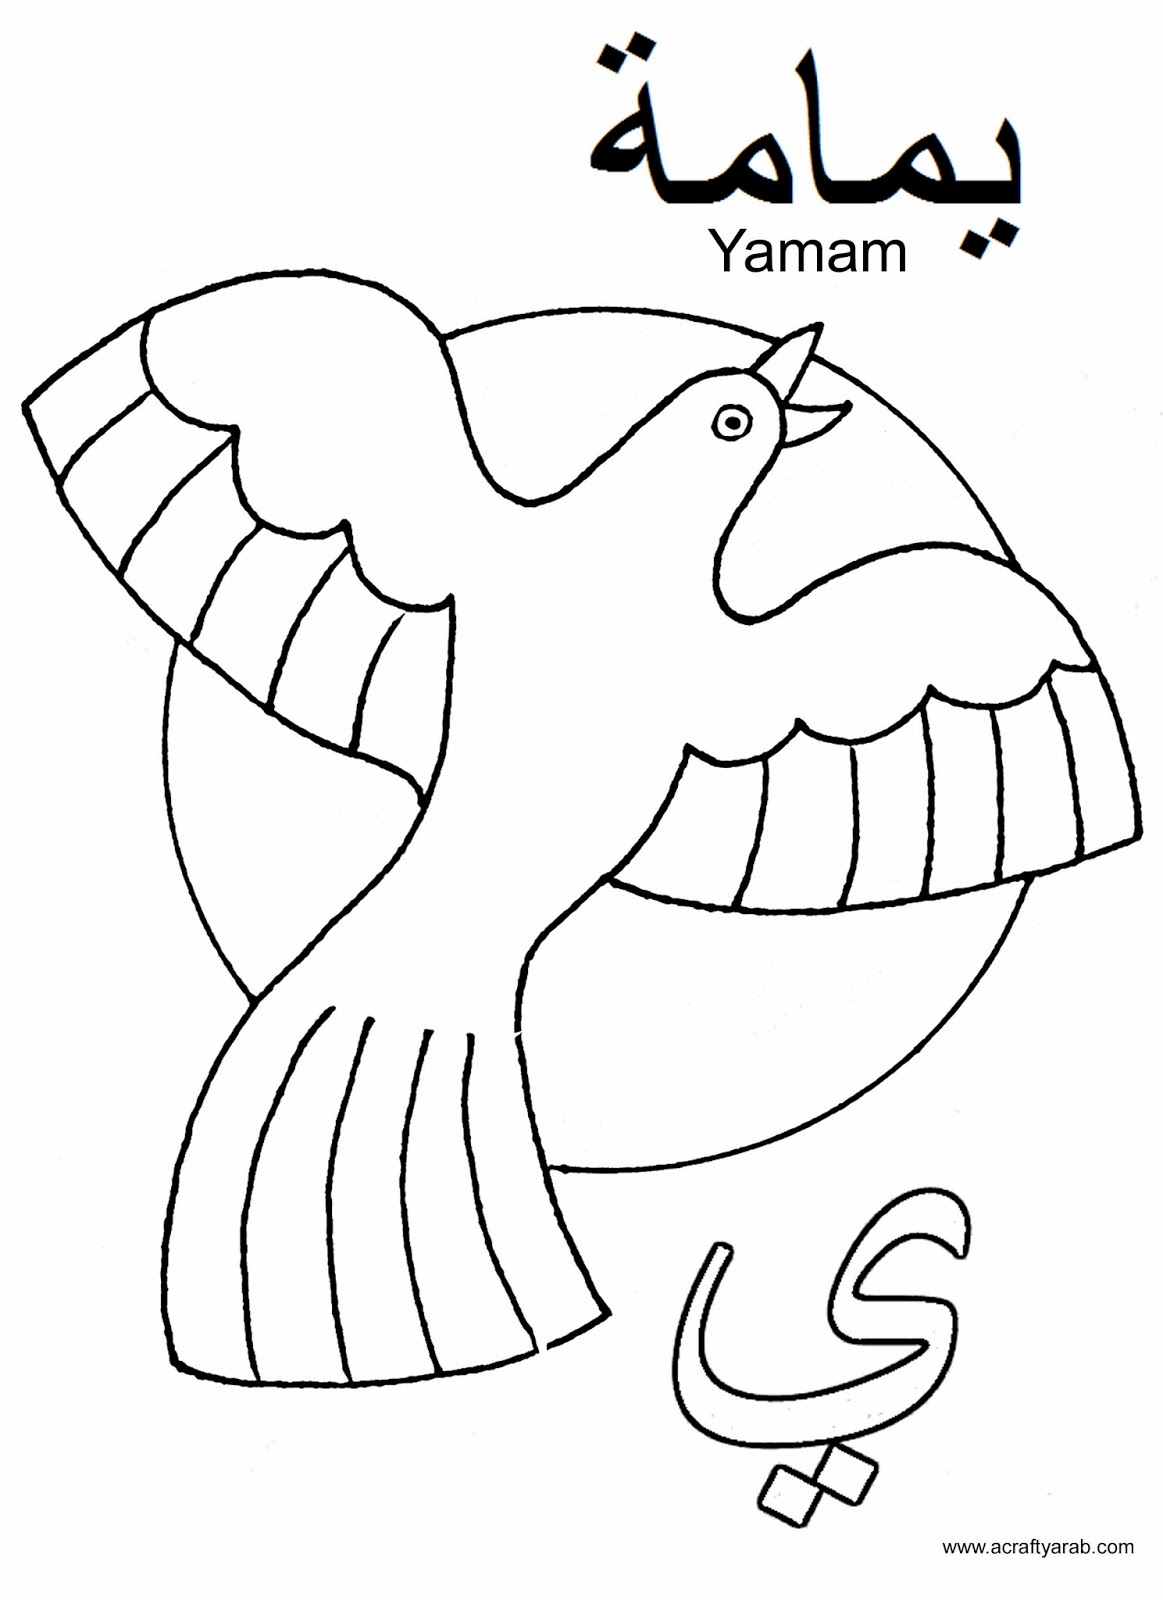 A Crafty Arab Arabic Alphabet Coloring Pages Ya Is For Arabic Coloring Pages